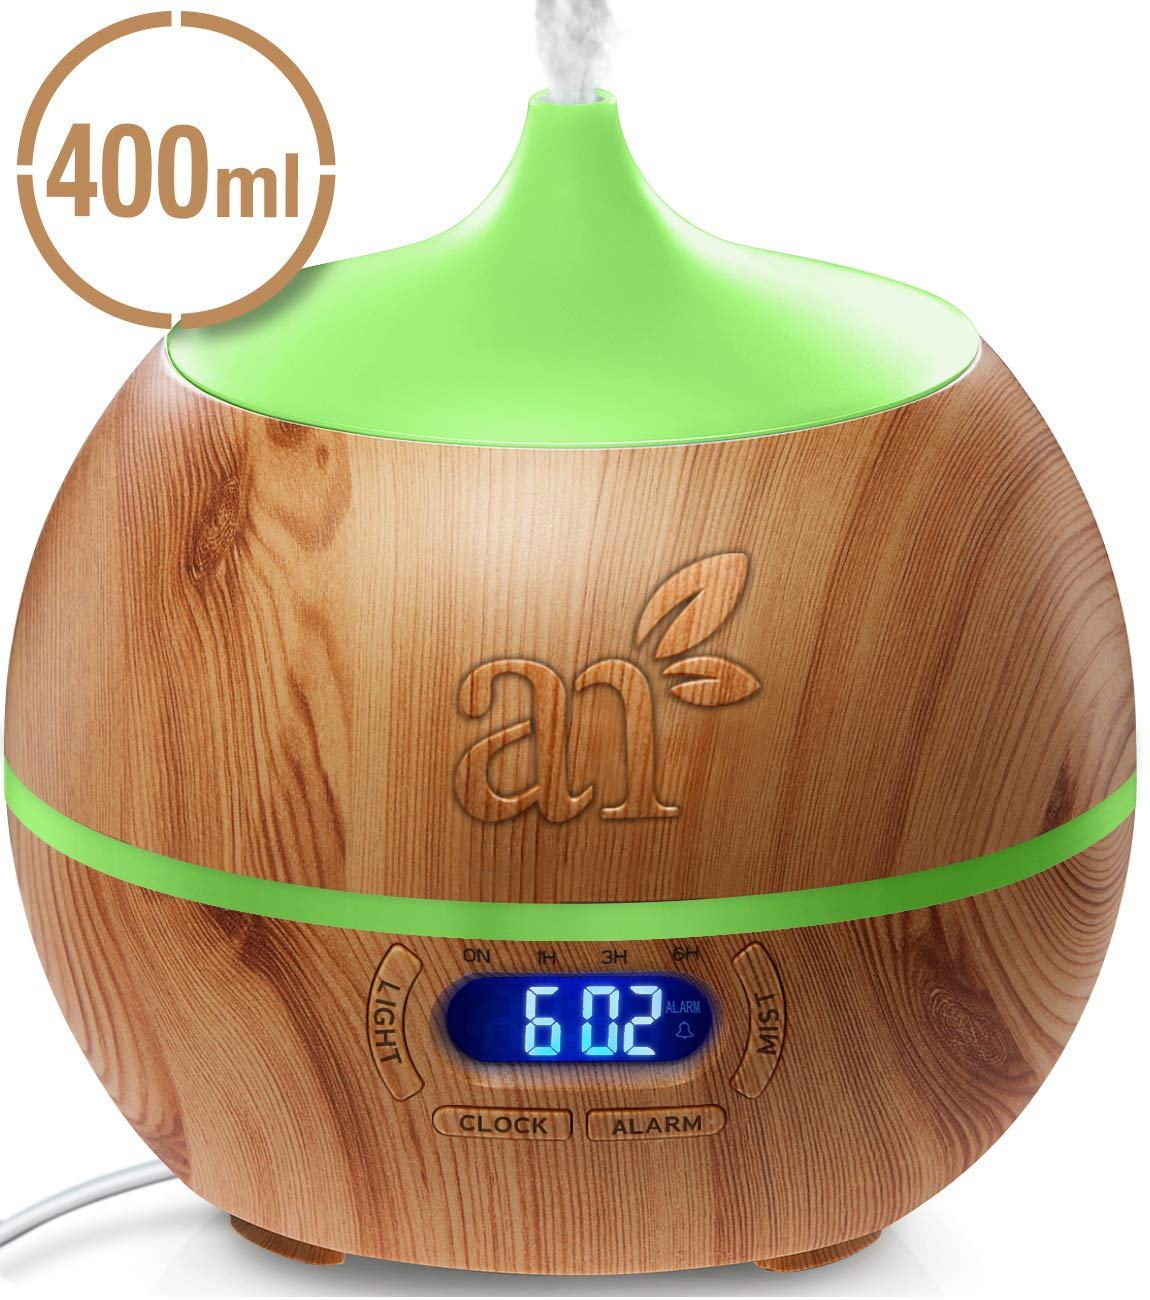 ArtNaturals Essential Oil Diffuser and Humidifier with Bluetooth Speaker Clock - (13.5 Fl Oz / 400ml Tank) - Electric Cool Mist Aromatherapy for Office, Home, Bedroom, Baby Room 7 Color LED Lights by ArtNaturals